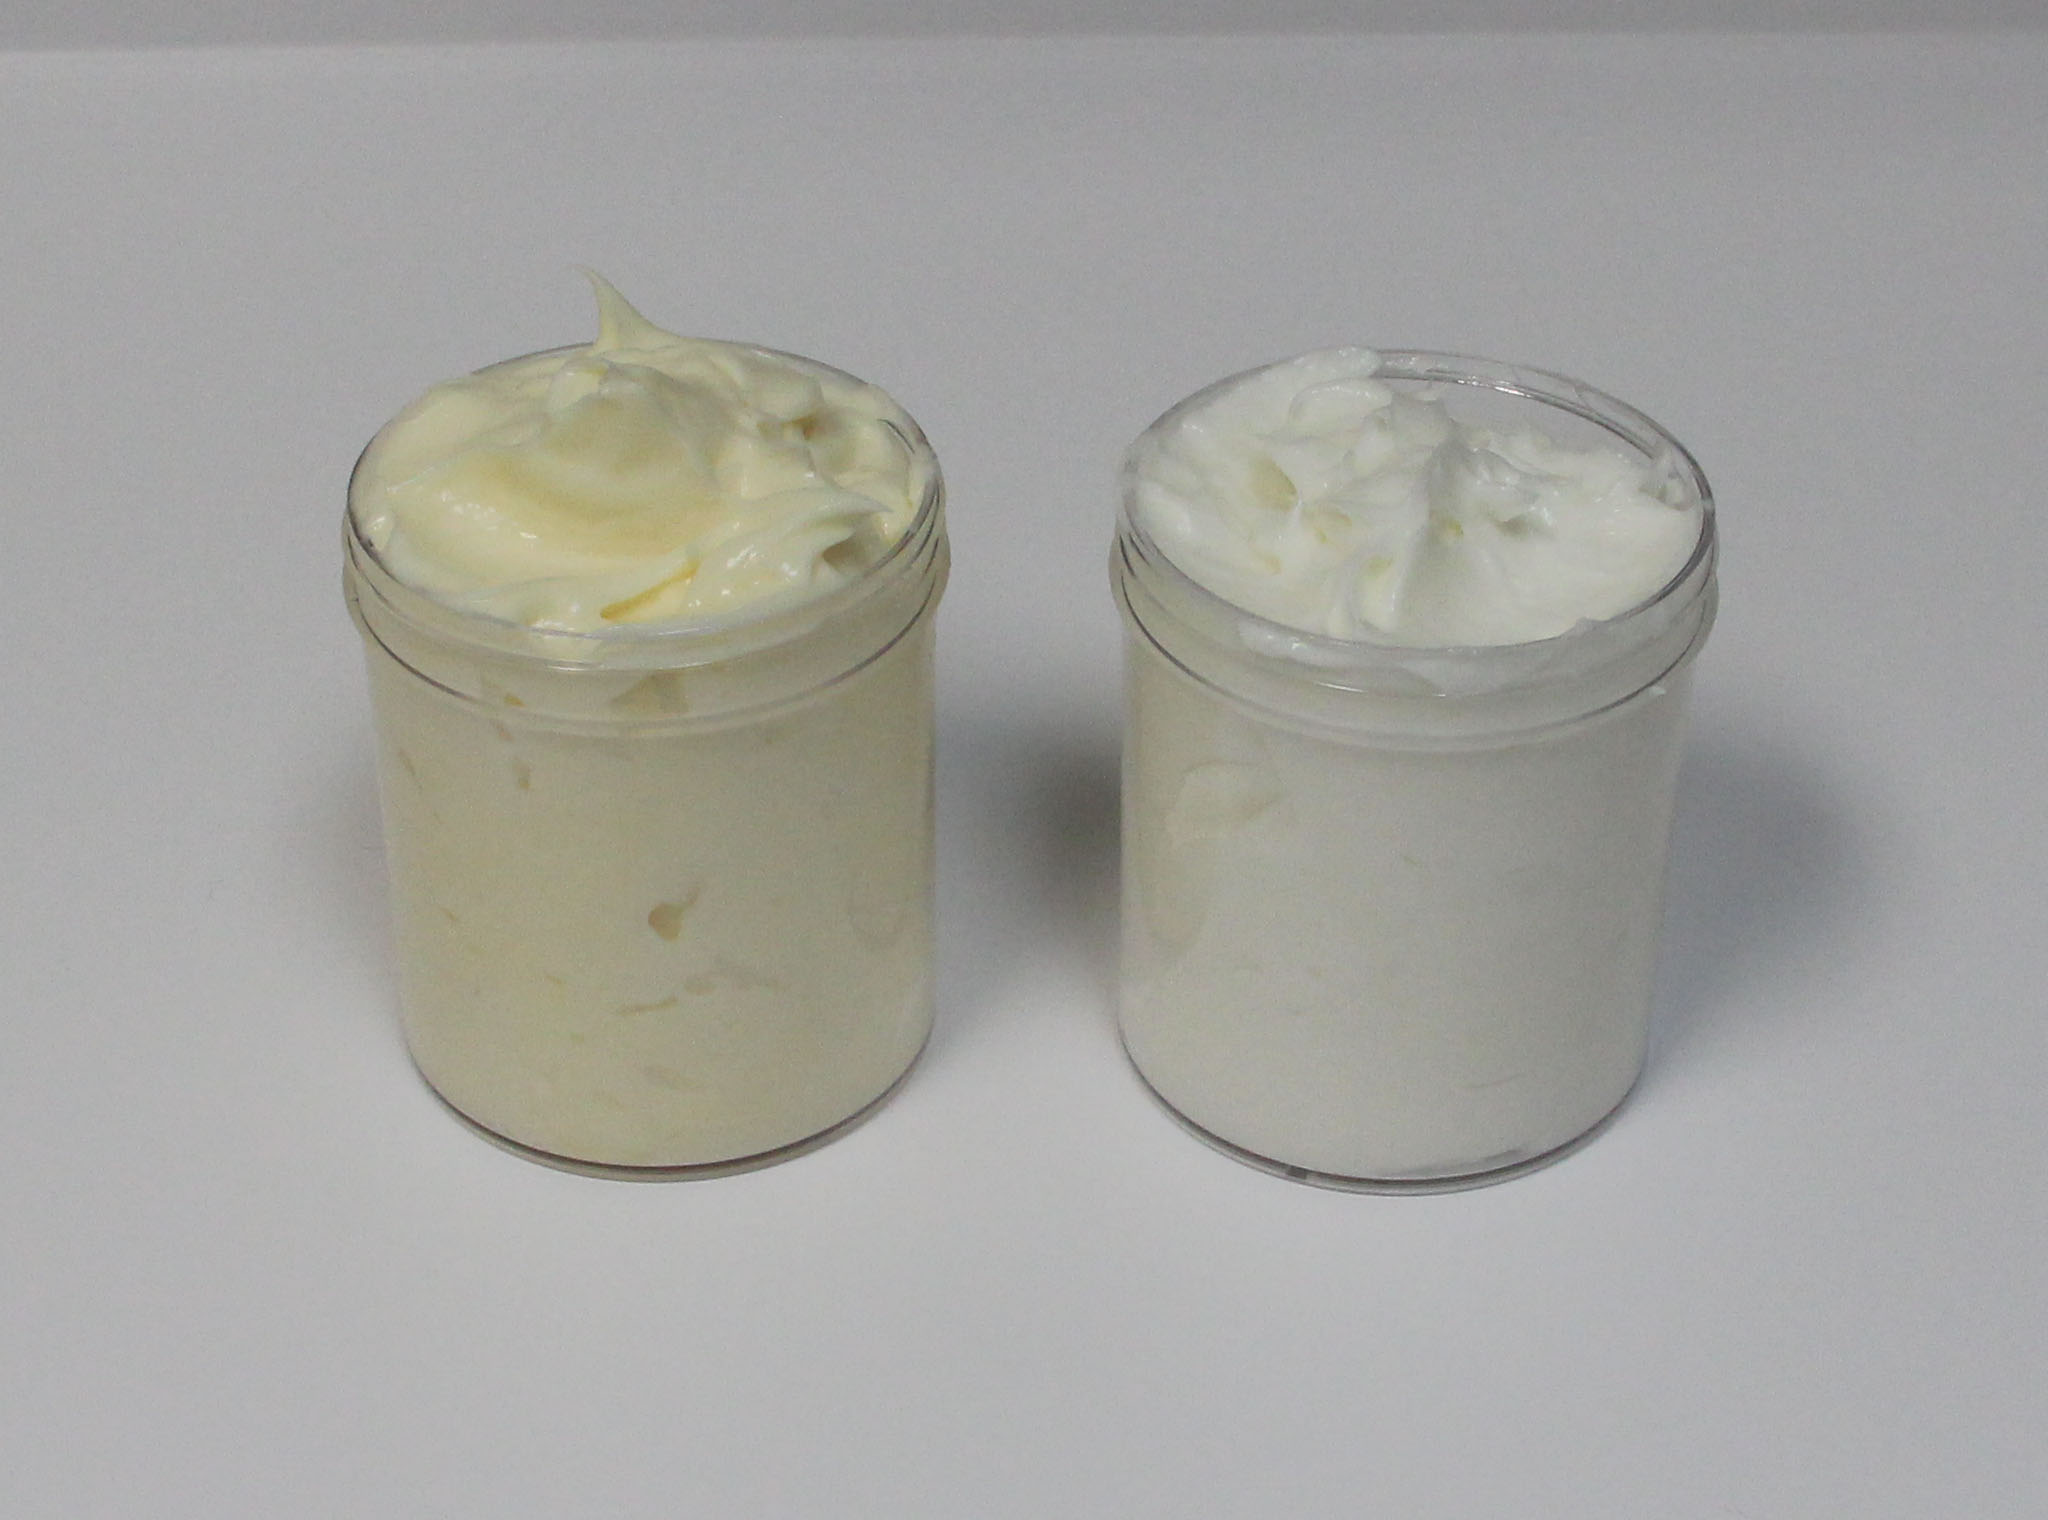 whipped body butter diy tutorial